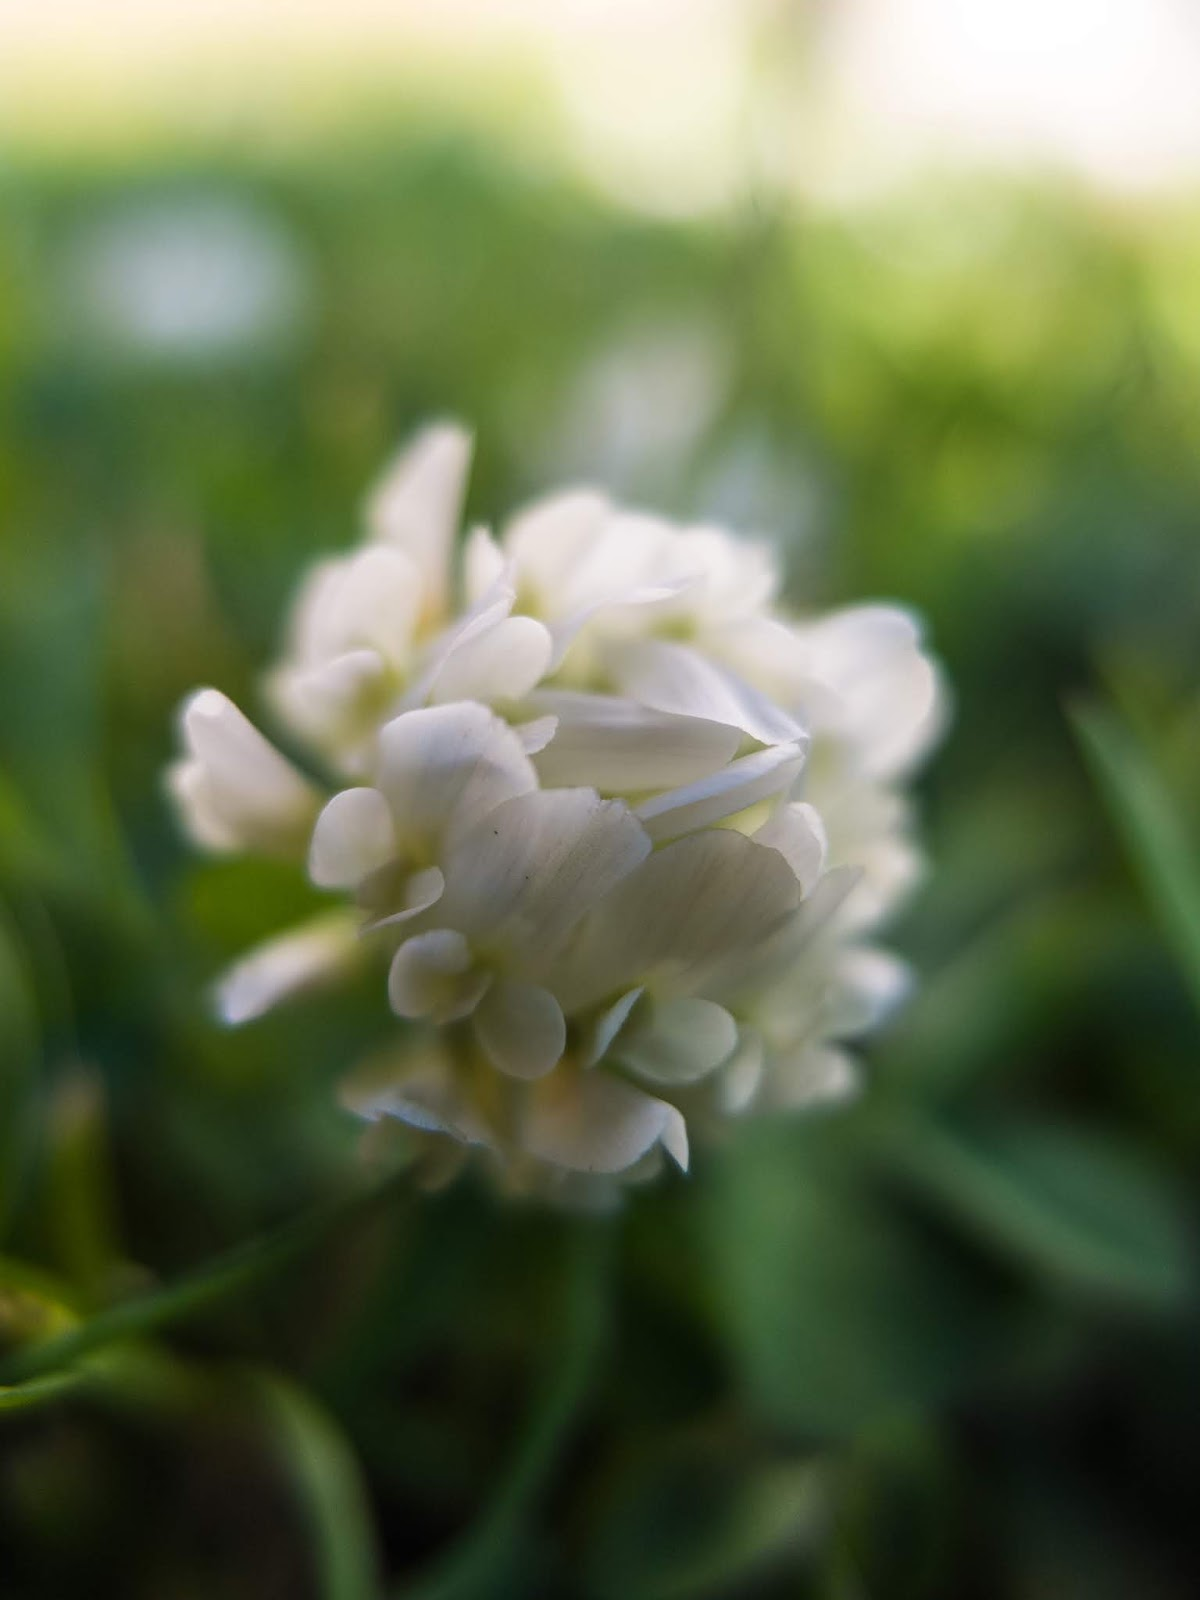 A macro of tiny white clover petals photographed among grass.